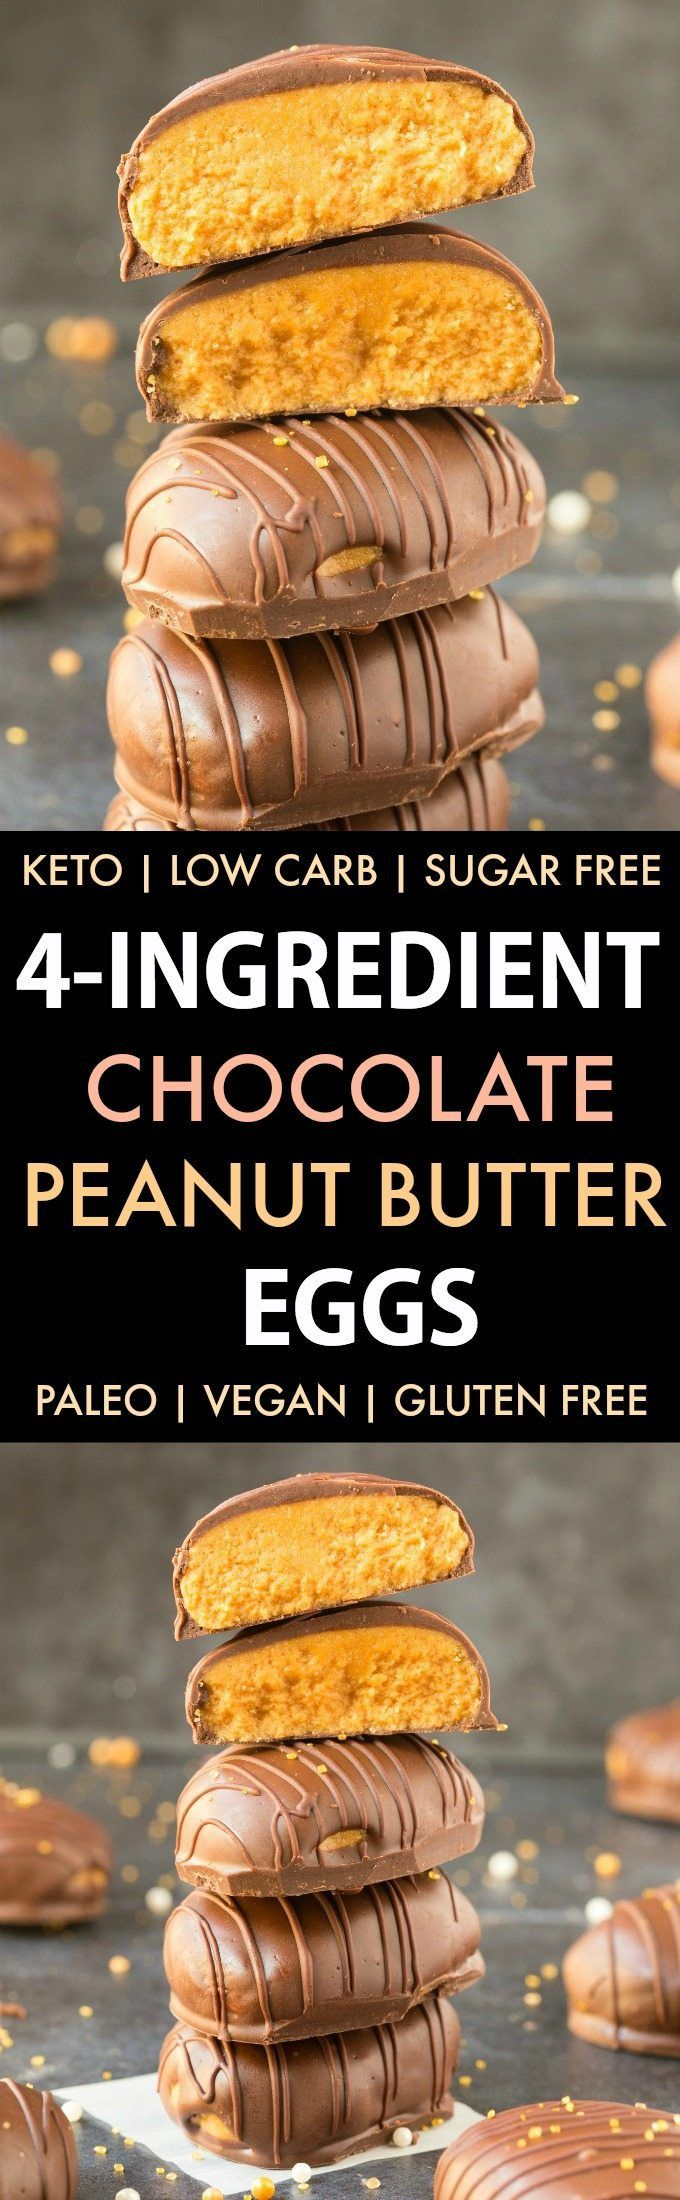 4-Ingredient No Bake Chocolate Peanut Butter Eggs Recipe (Paleo, Vegan, Keto, Sugar Free, Gluten Free)-An easy recipe for chocolate peanut butter eggs using just 4 ingredients! Easy, delicious low carb Easter chocolate which tastes like a Reese's Peanut Butter Cup but healthy! #keto #ketosis #nobake #Easter #peanutbutter | Recipe on thebigmansworld.com